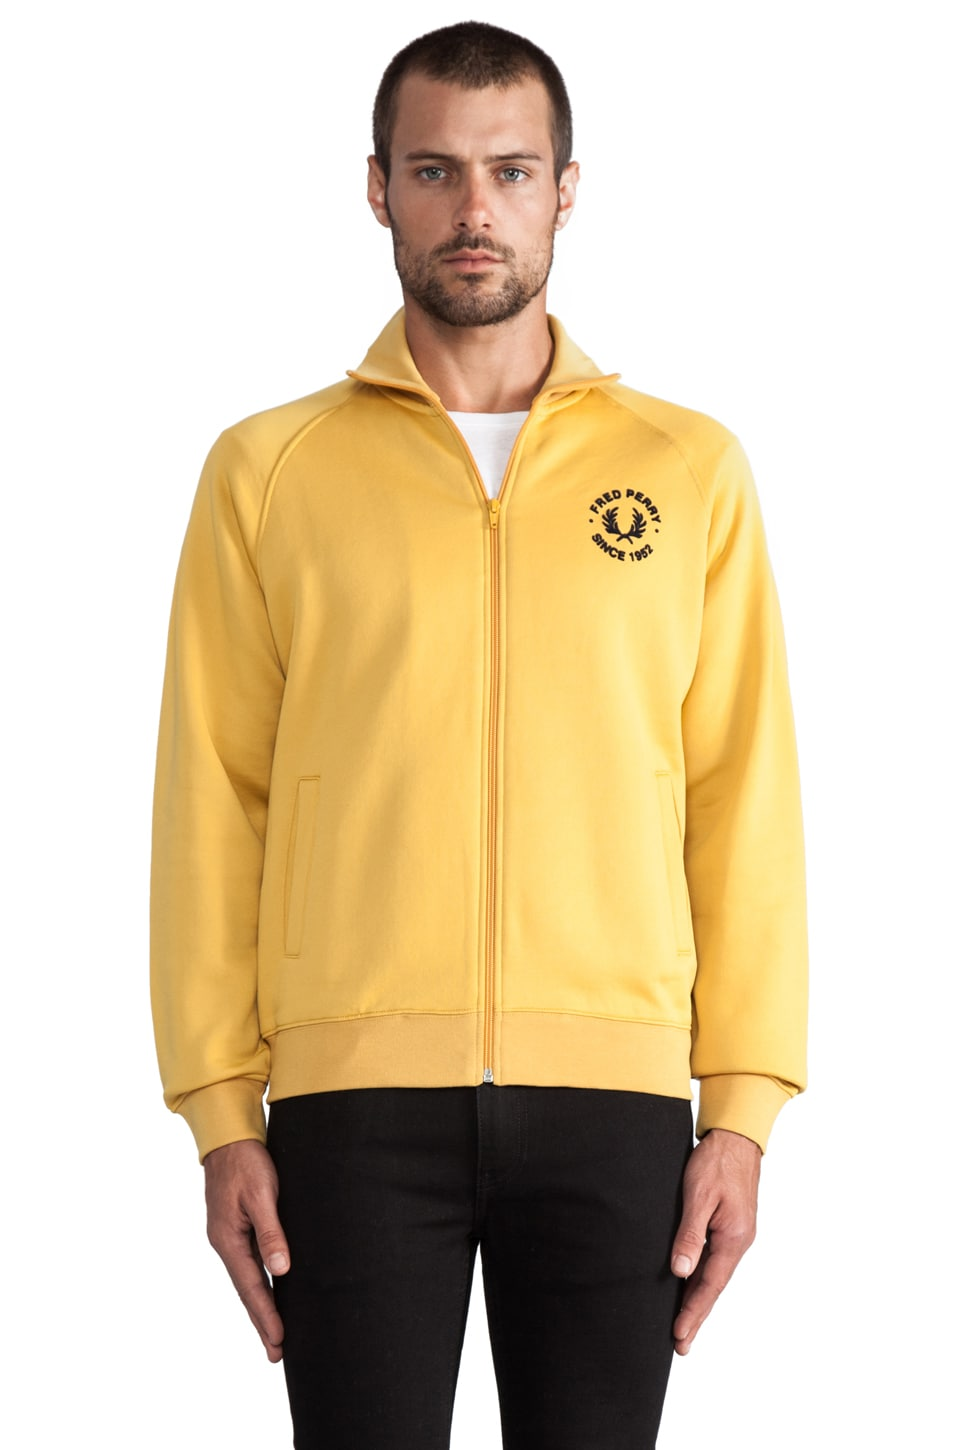 Fred Perry Track Jacket in Mustard/Navy